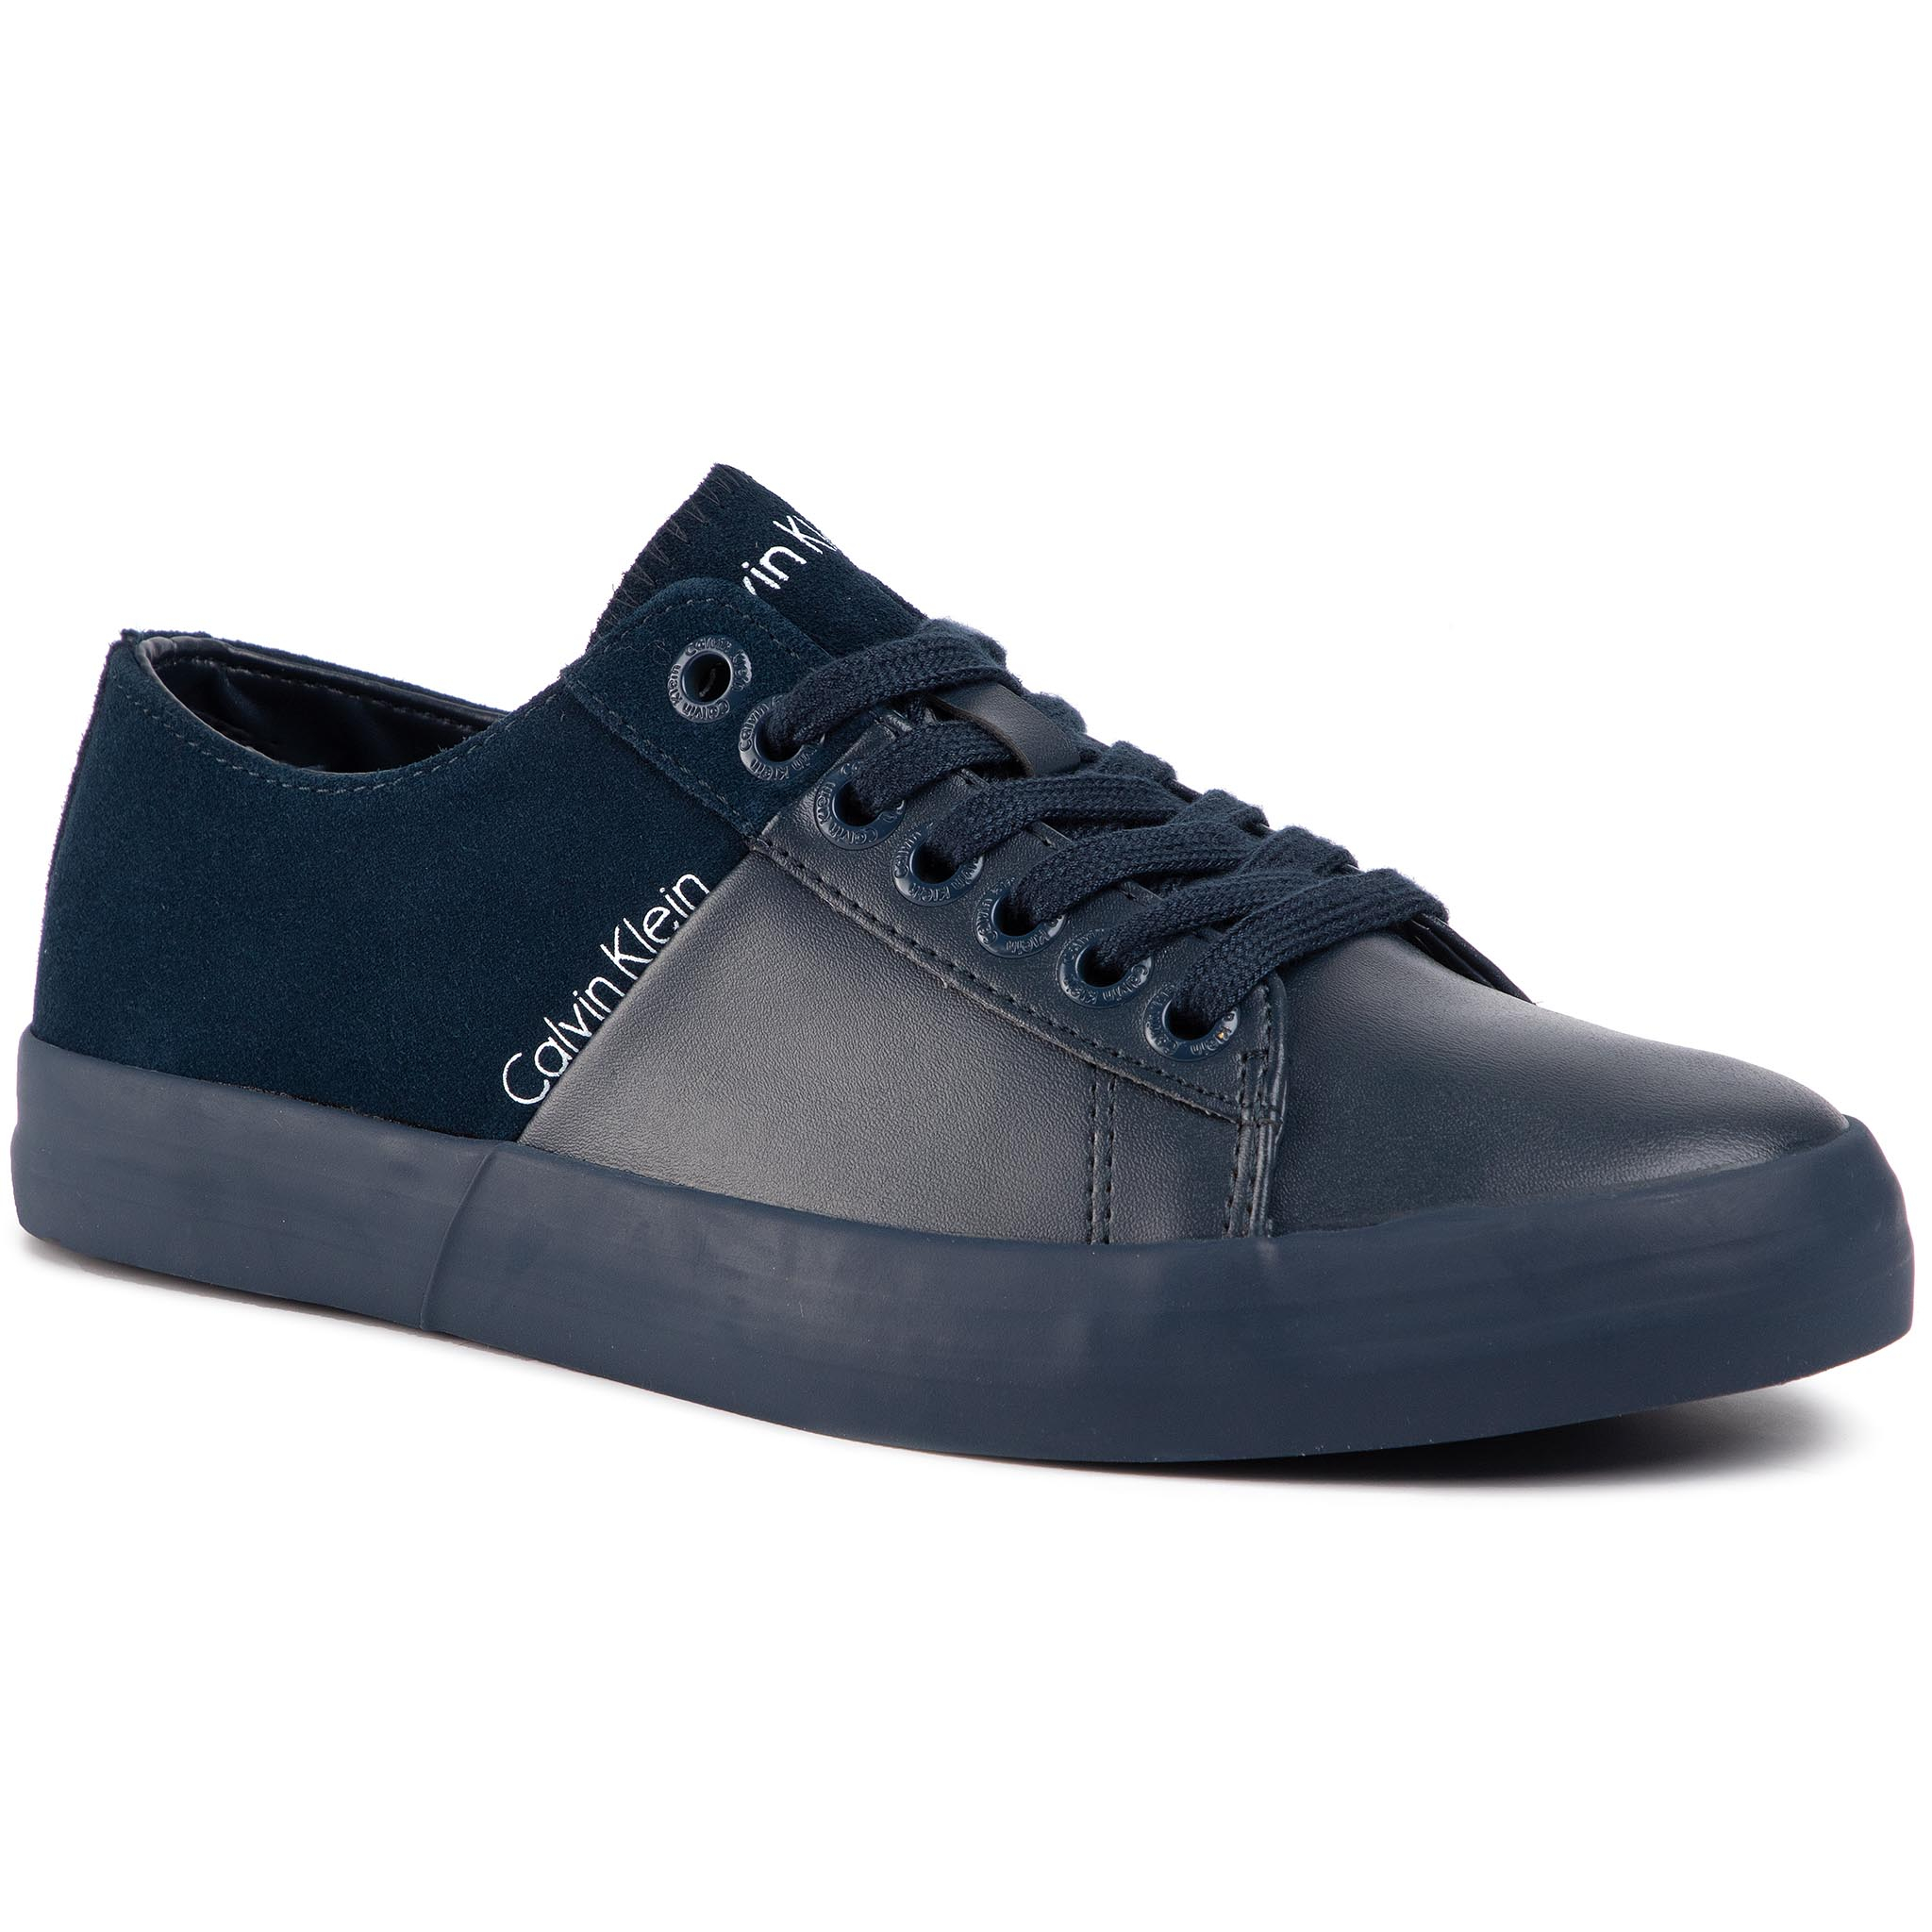 Image of Sneakers CALVIN KLEIN JEANS - Byron SE8461 Navy/Navy